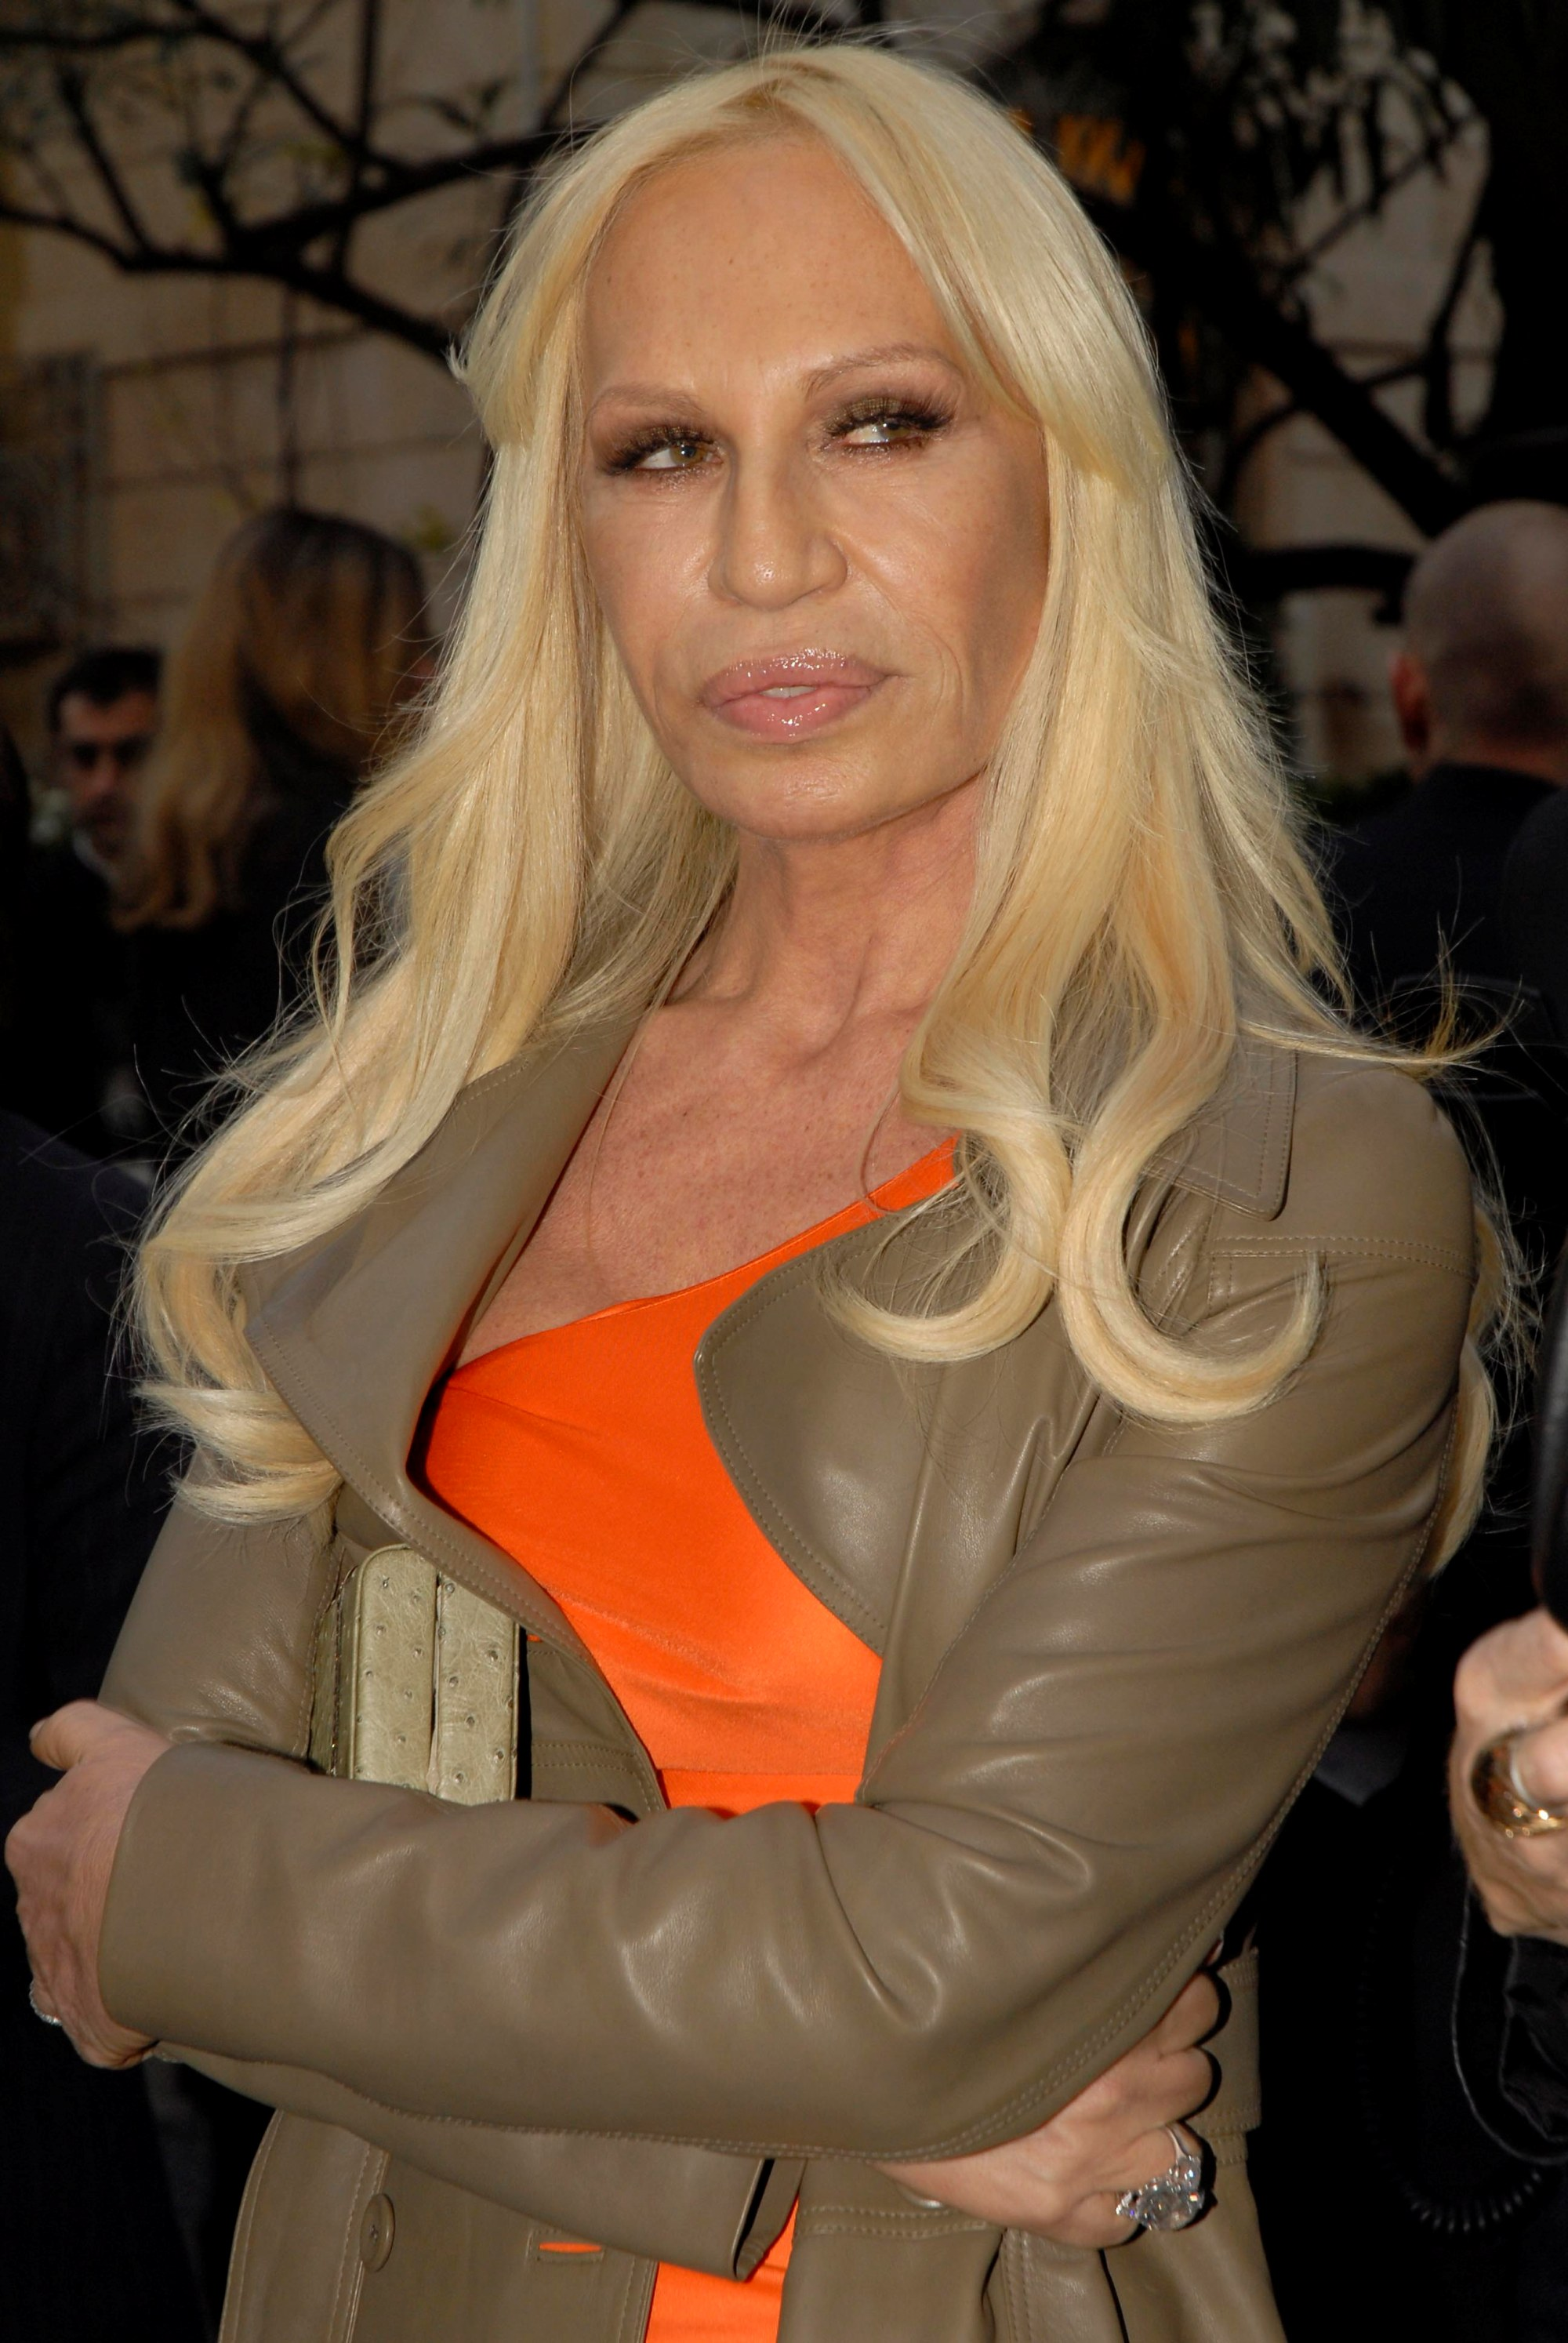 Donatella Versace News